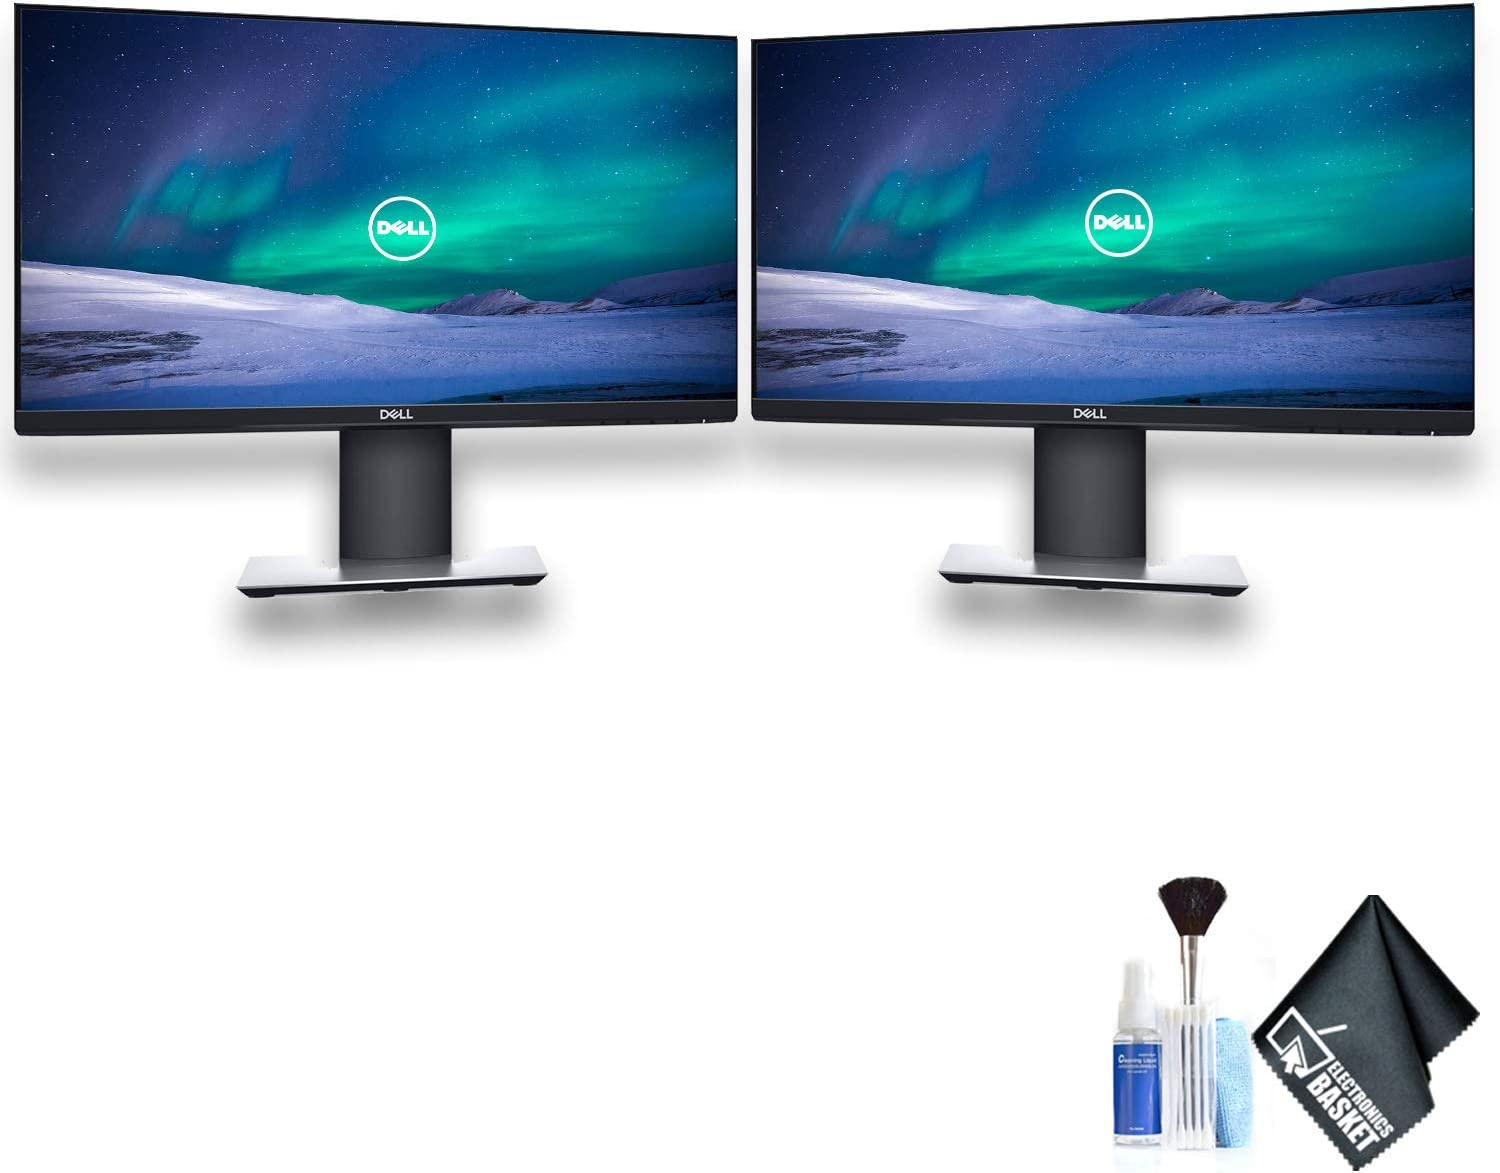 "Dell P2219H 21.5"" 16:9 Ultrathin Bezel IPS Monitor Dual Monitor Set With Deluxe Cleaning Kit"